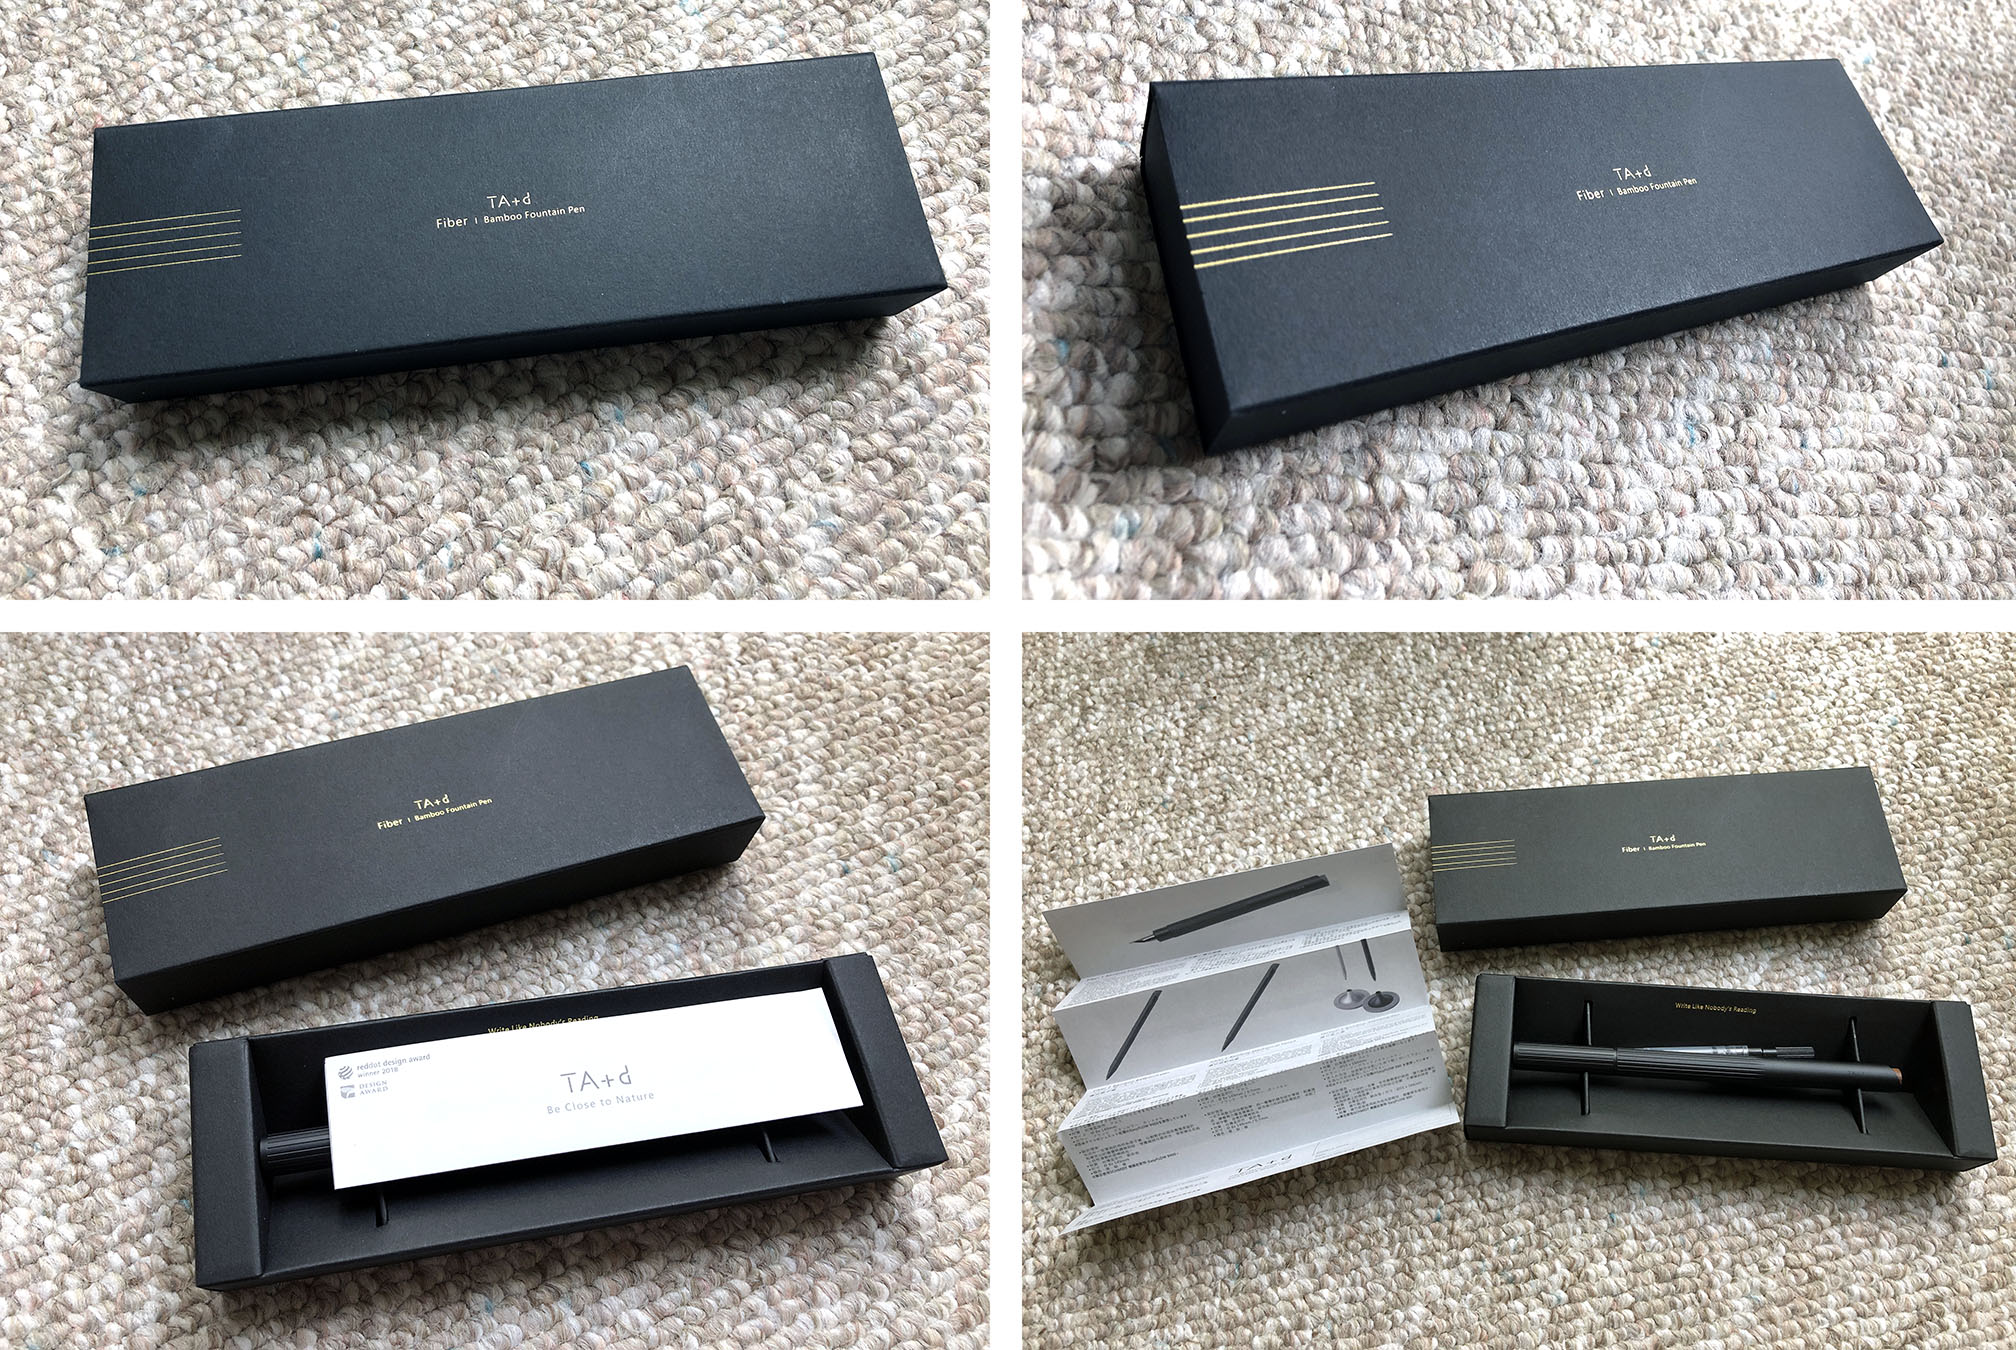 Photo collage of the packaging box of a fountain pen. The box is entirely made of paper and is primarily textured matte black with some minimal golden foil accents and text. The box was designed to be slip case that reveals the bottom box that holds the pen.